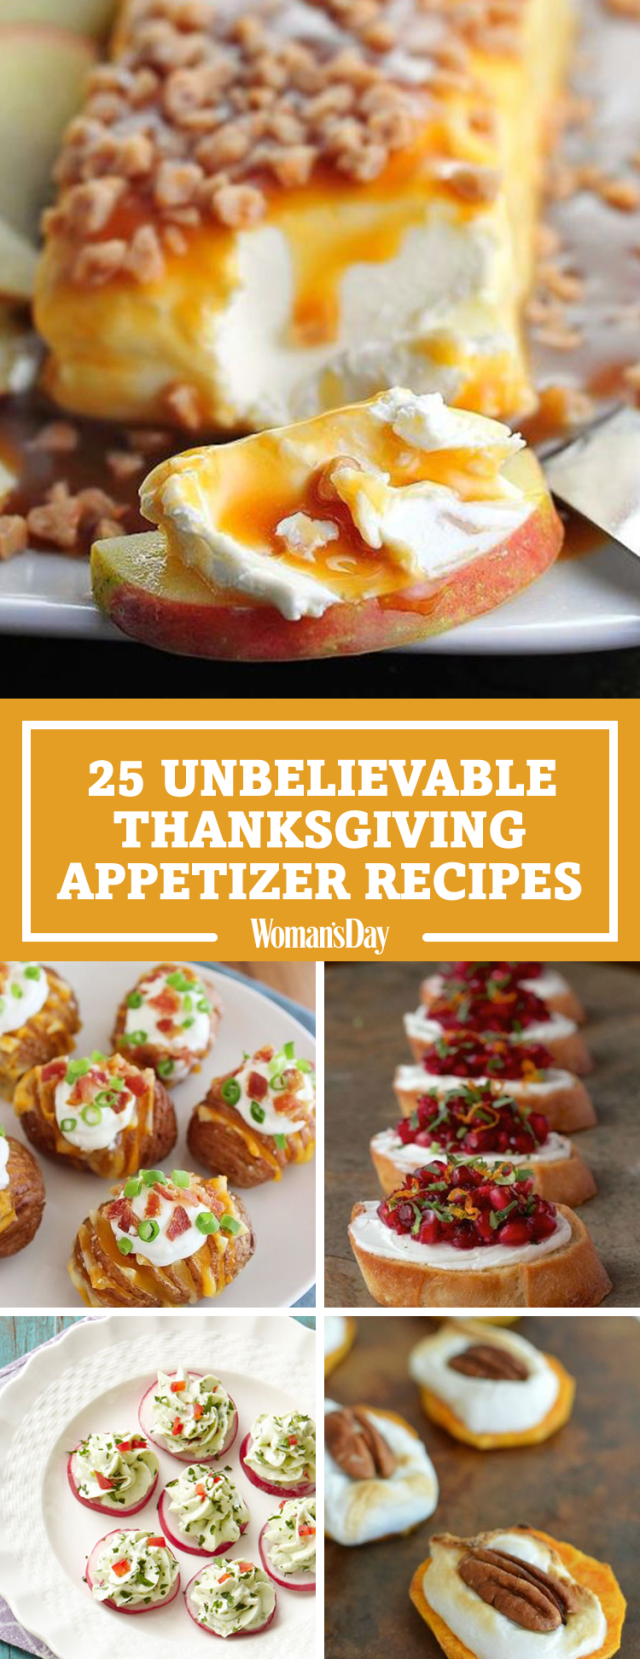 33 unbelievably good thanksgiving appetizer recipes pinterest save these thanksgiving appetizer ideas for later by pinning this image and follow womans day on pinterest for more forumfinder Choice Image